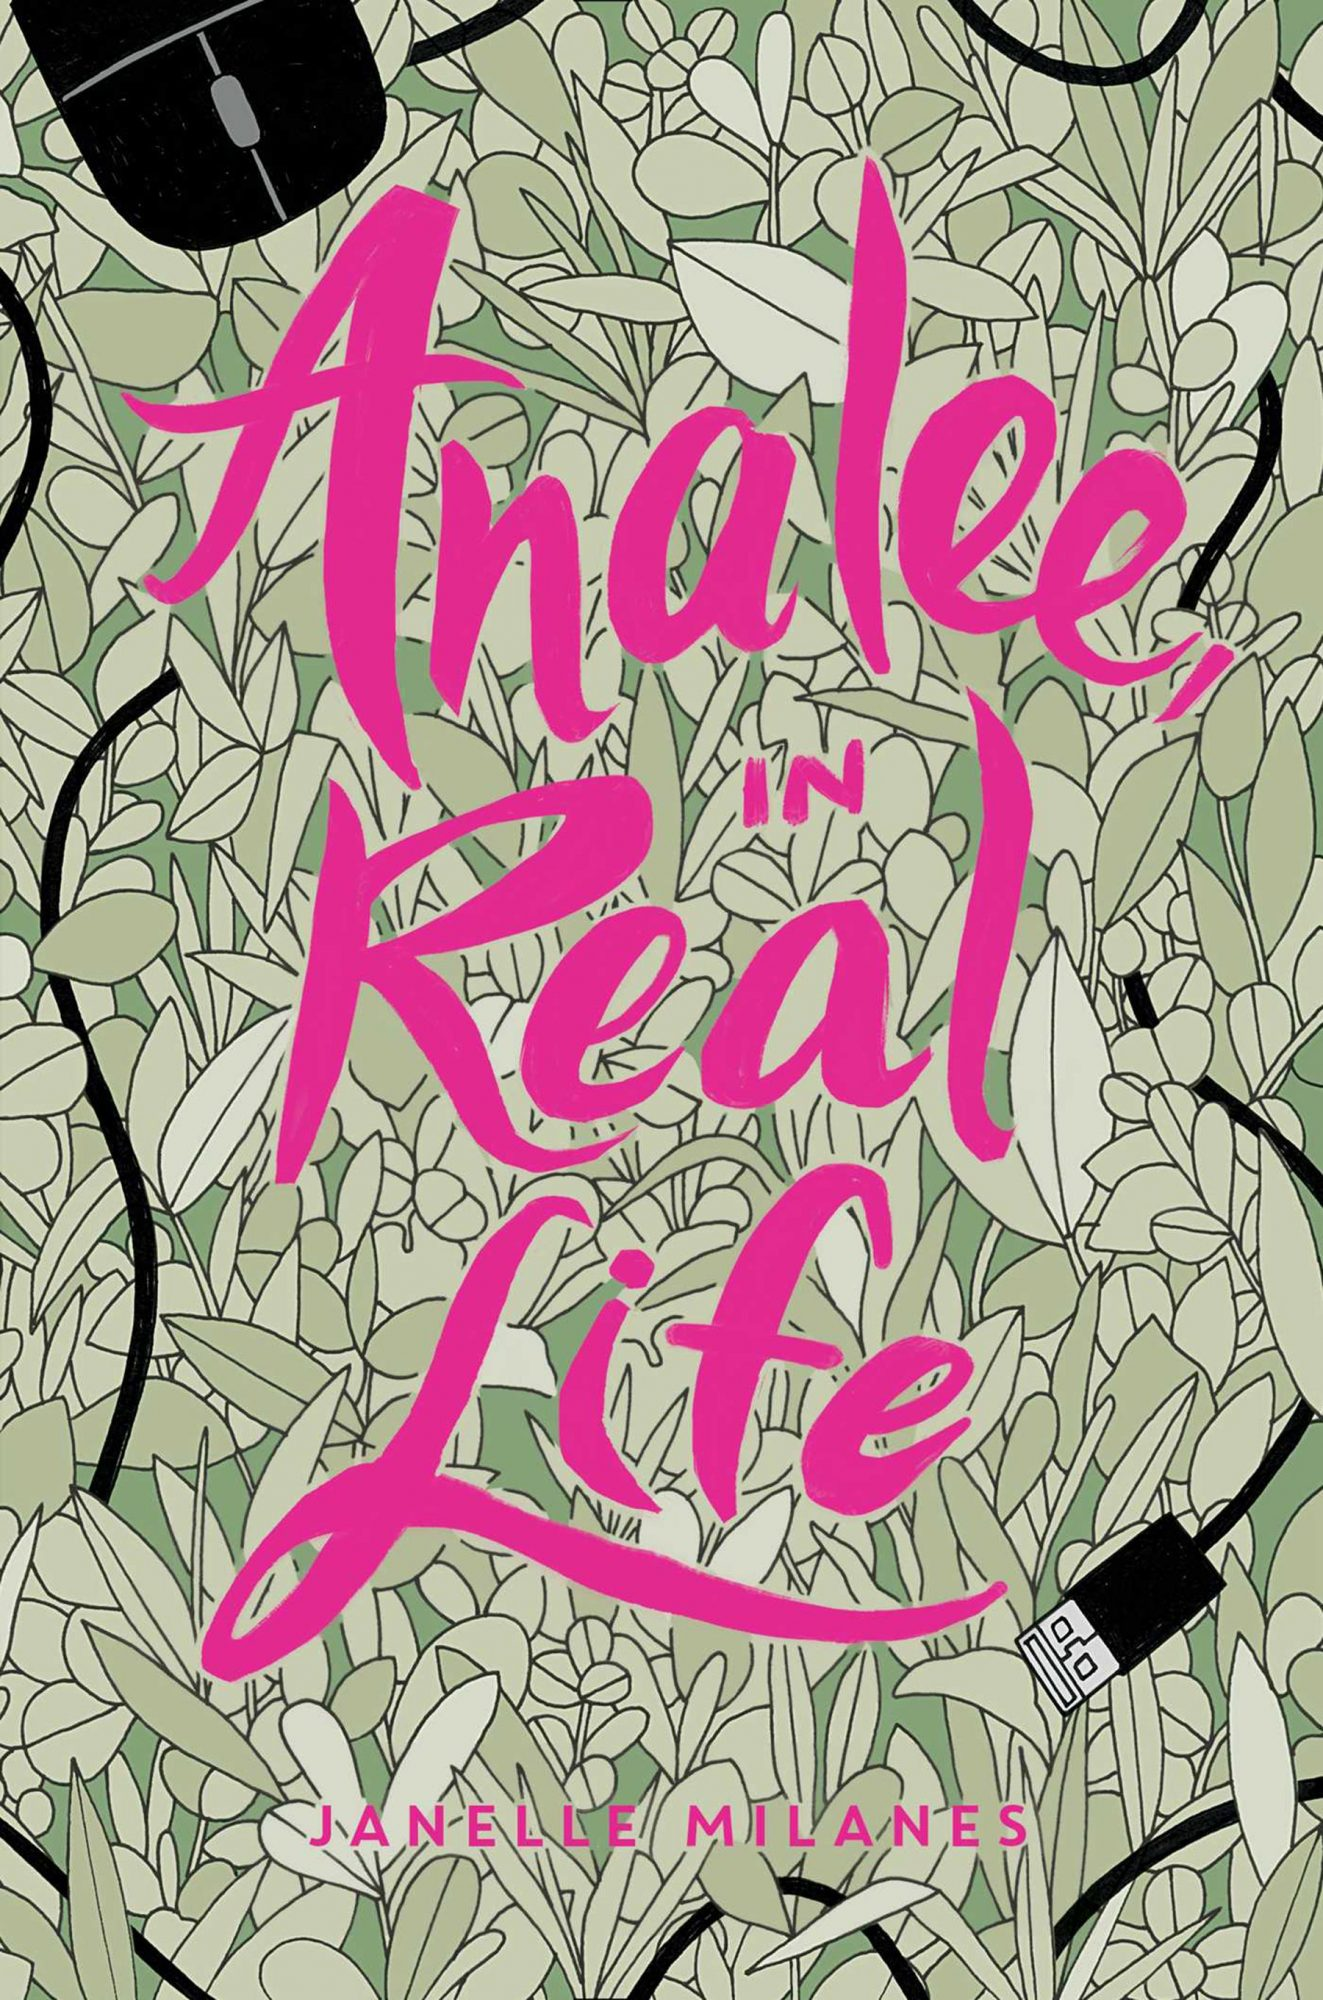 Analee, in Real LifeBy Janelle MilanesCR: Simon & Schuster